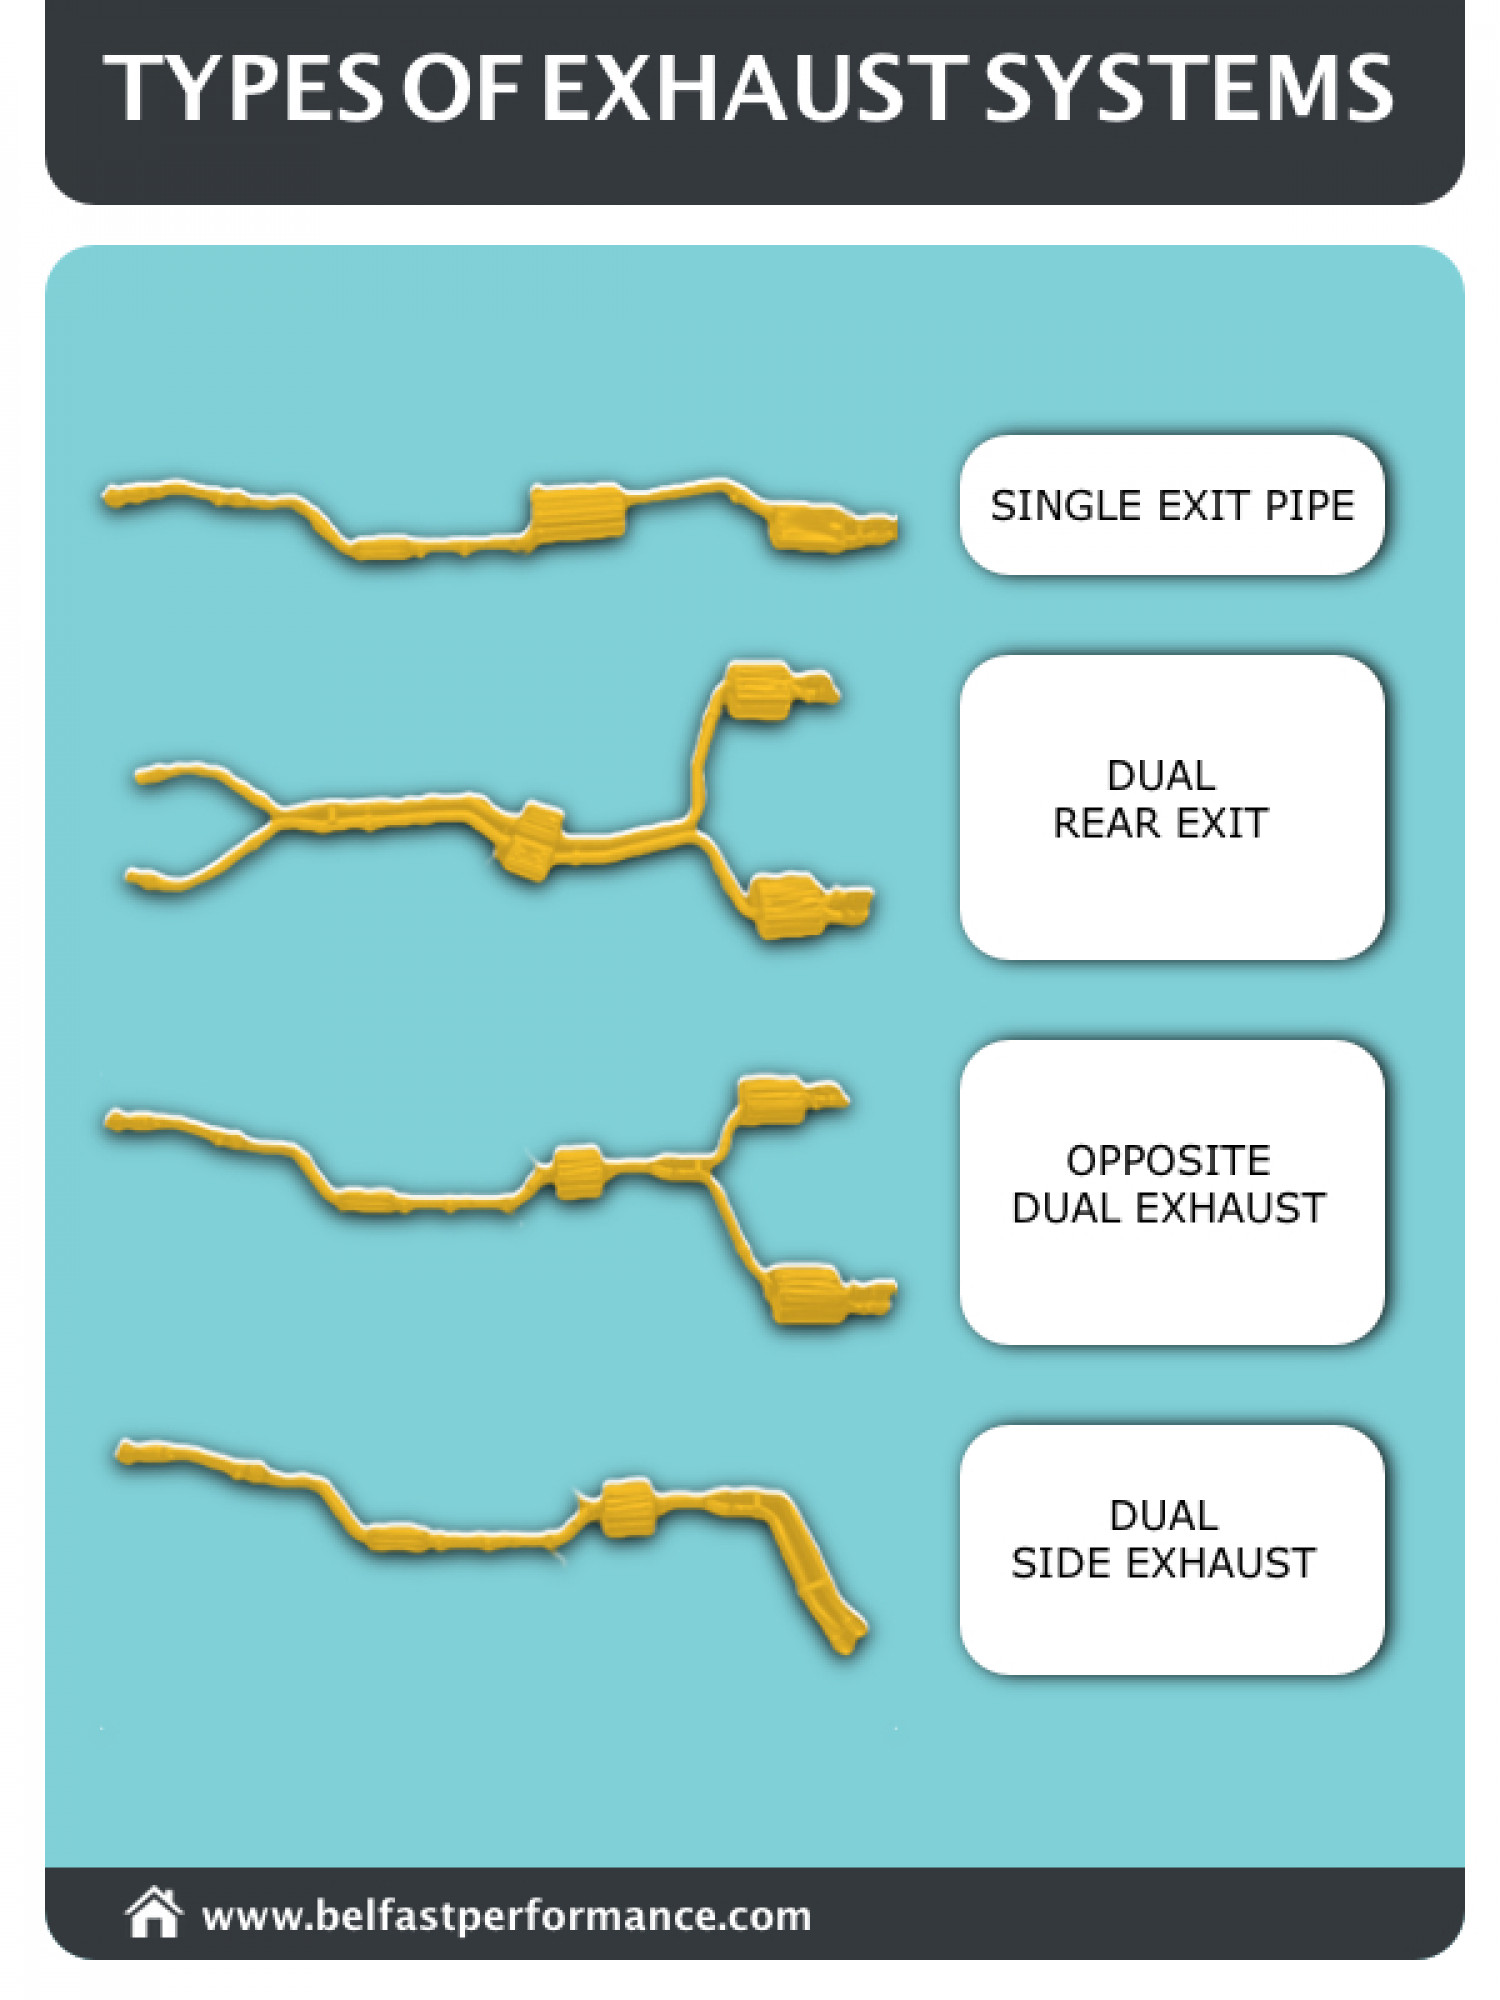 Types of Exhaust Systems Infographic